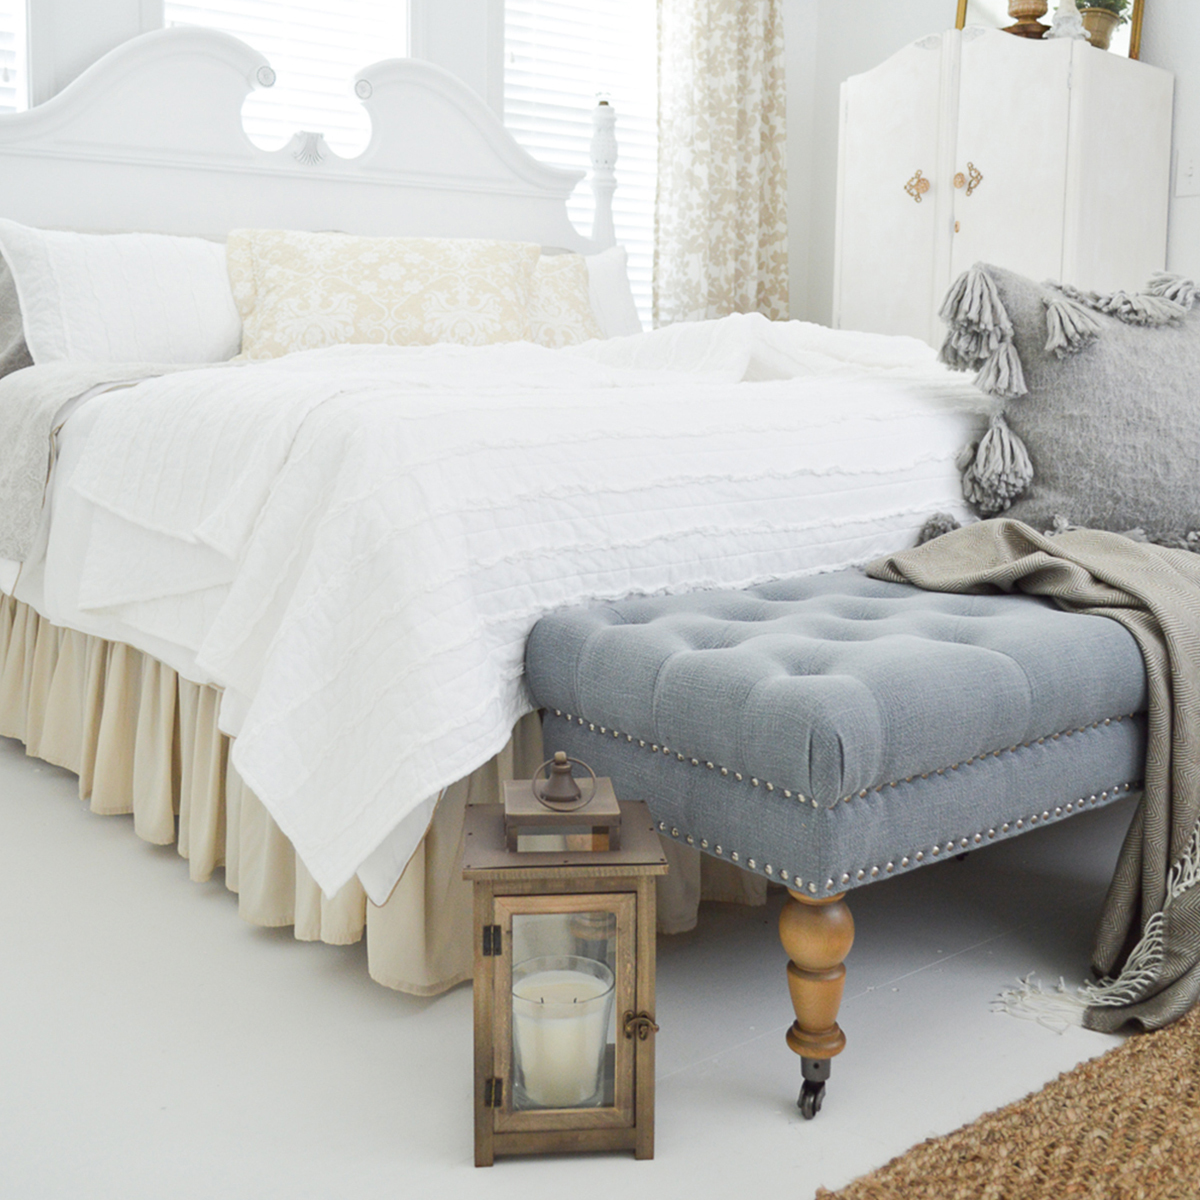 Create a farmhouse guest room with a comfy memory foam mattress, ruffle stripe quilt, farmhouse lantern, and woven fringe throw. photo